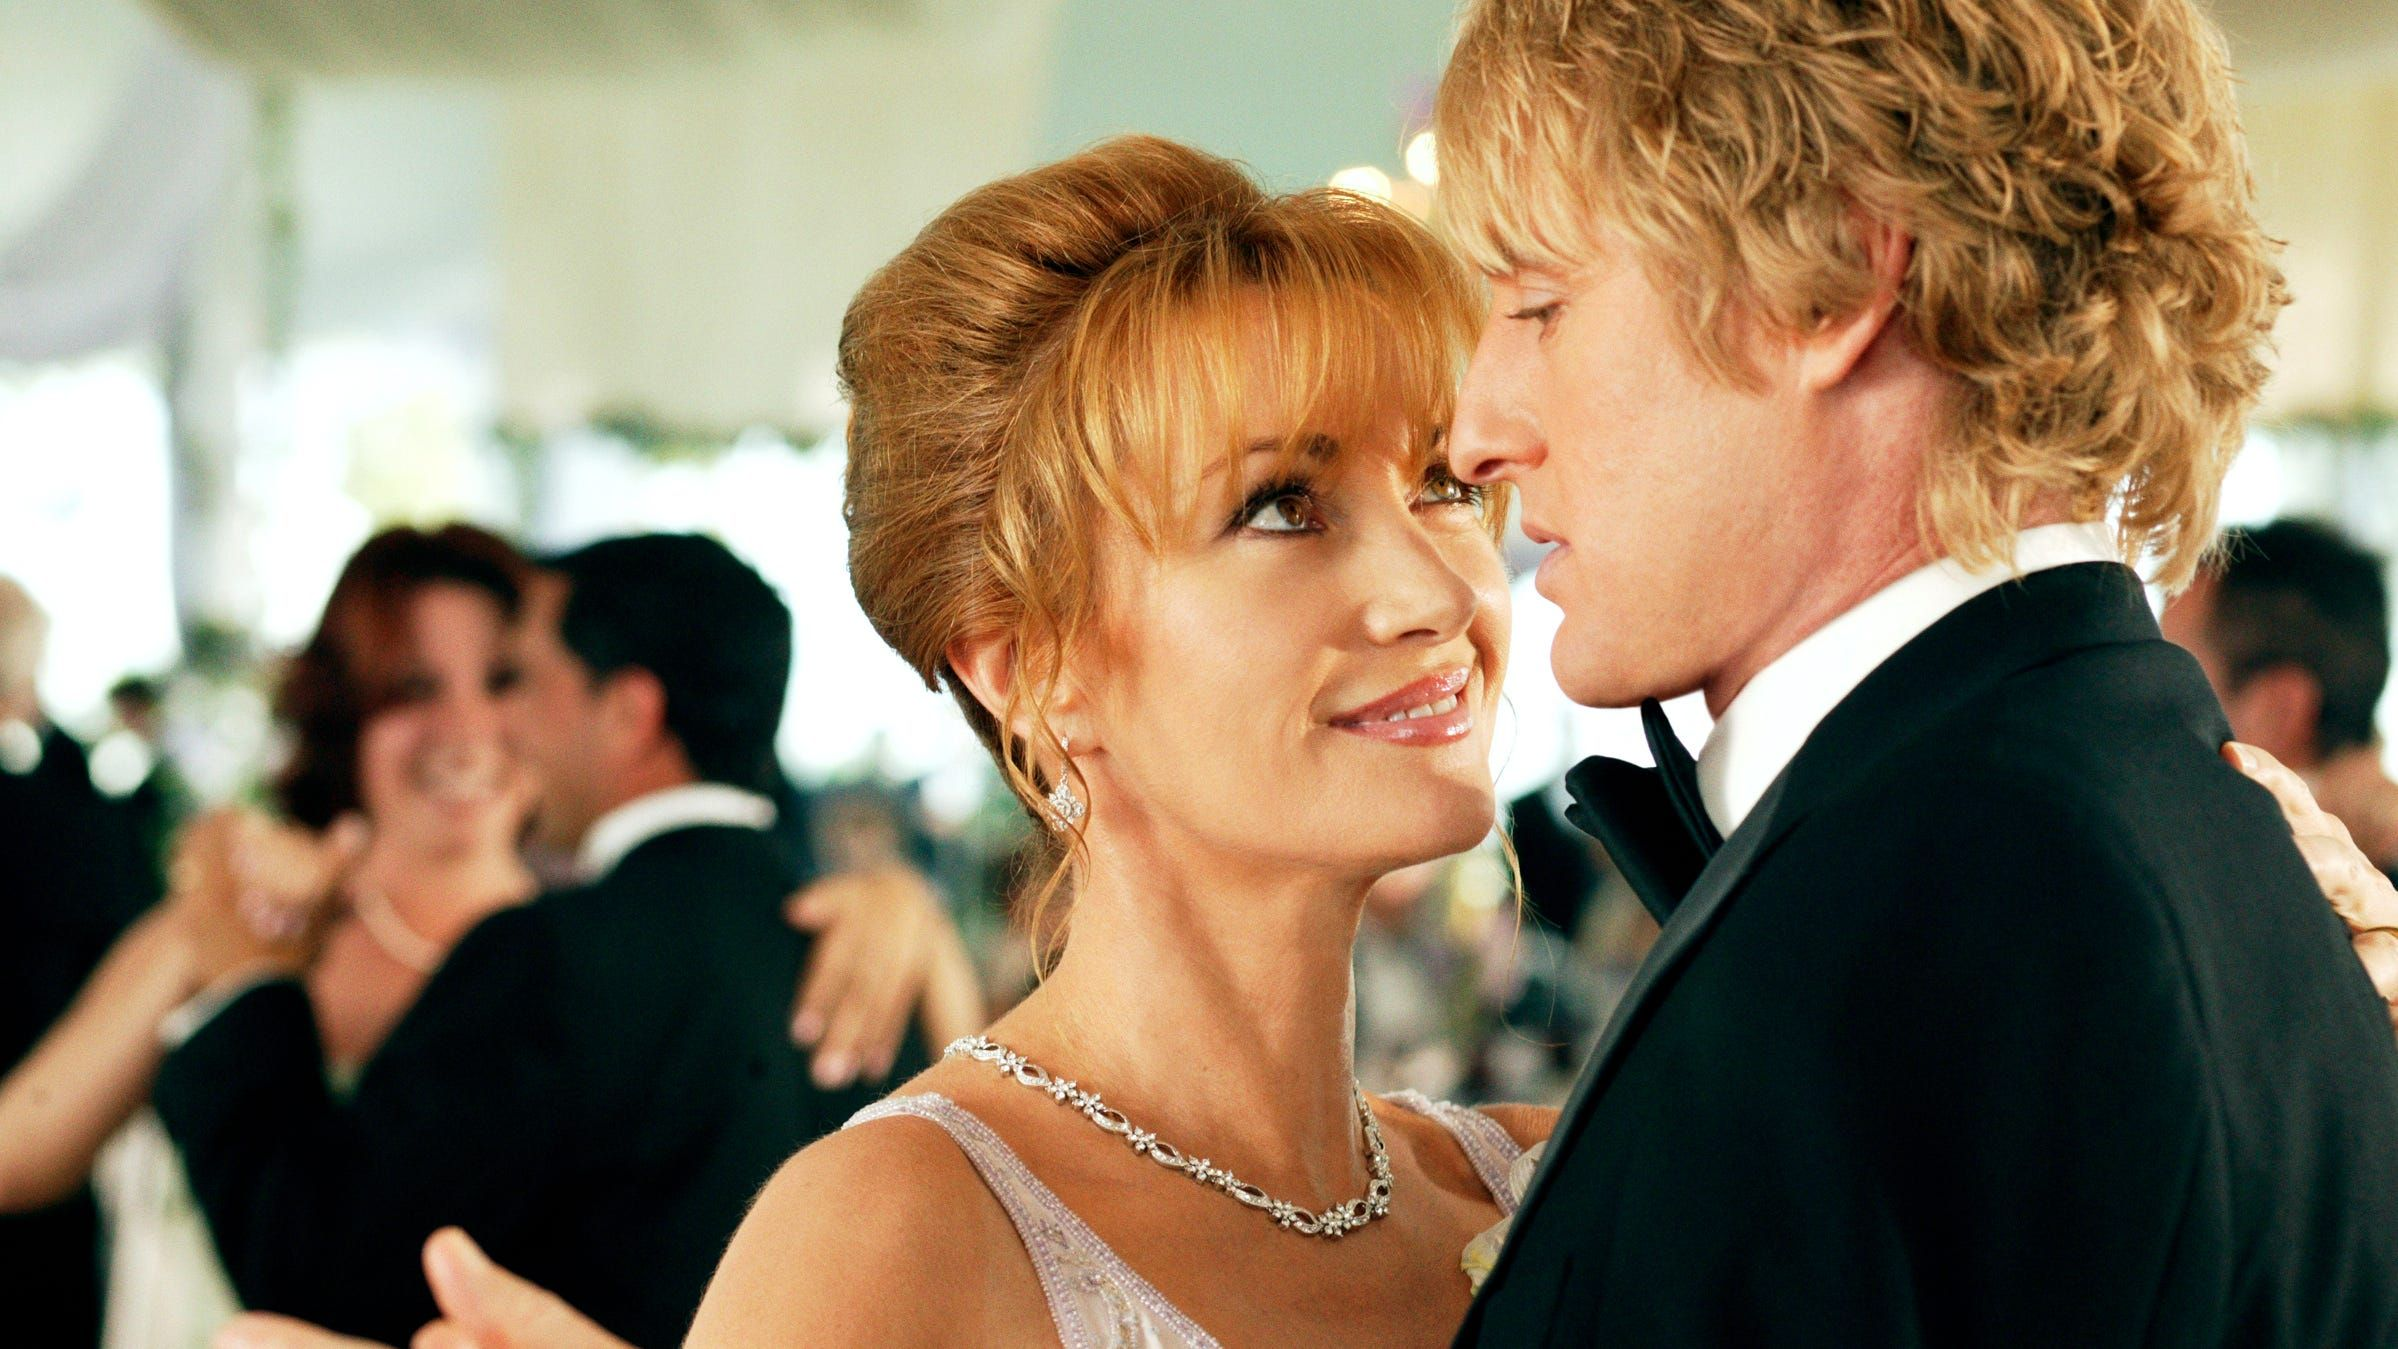 Wedding Crashers At 15 Jane Seymour Put The Hiss Into Kitty Kat But Almost Passed On R Rated Role Wedding Crashers Wedding Crashers Movie Jane Seymour